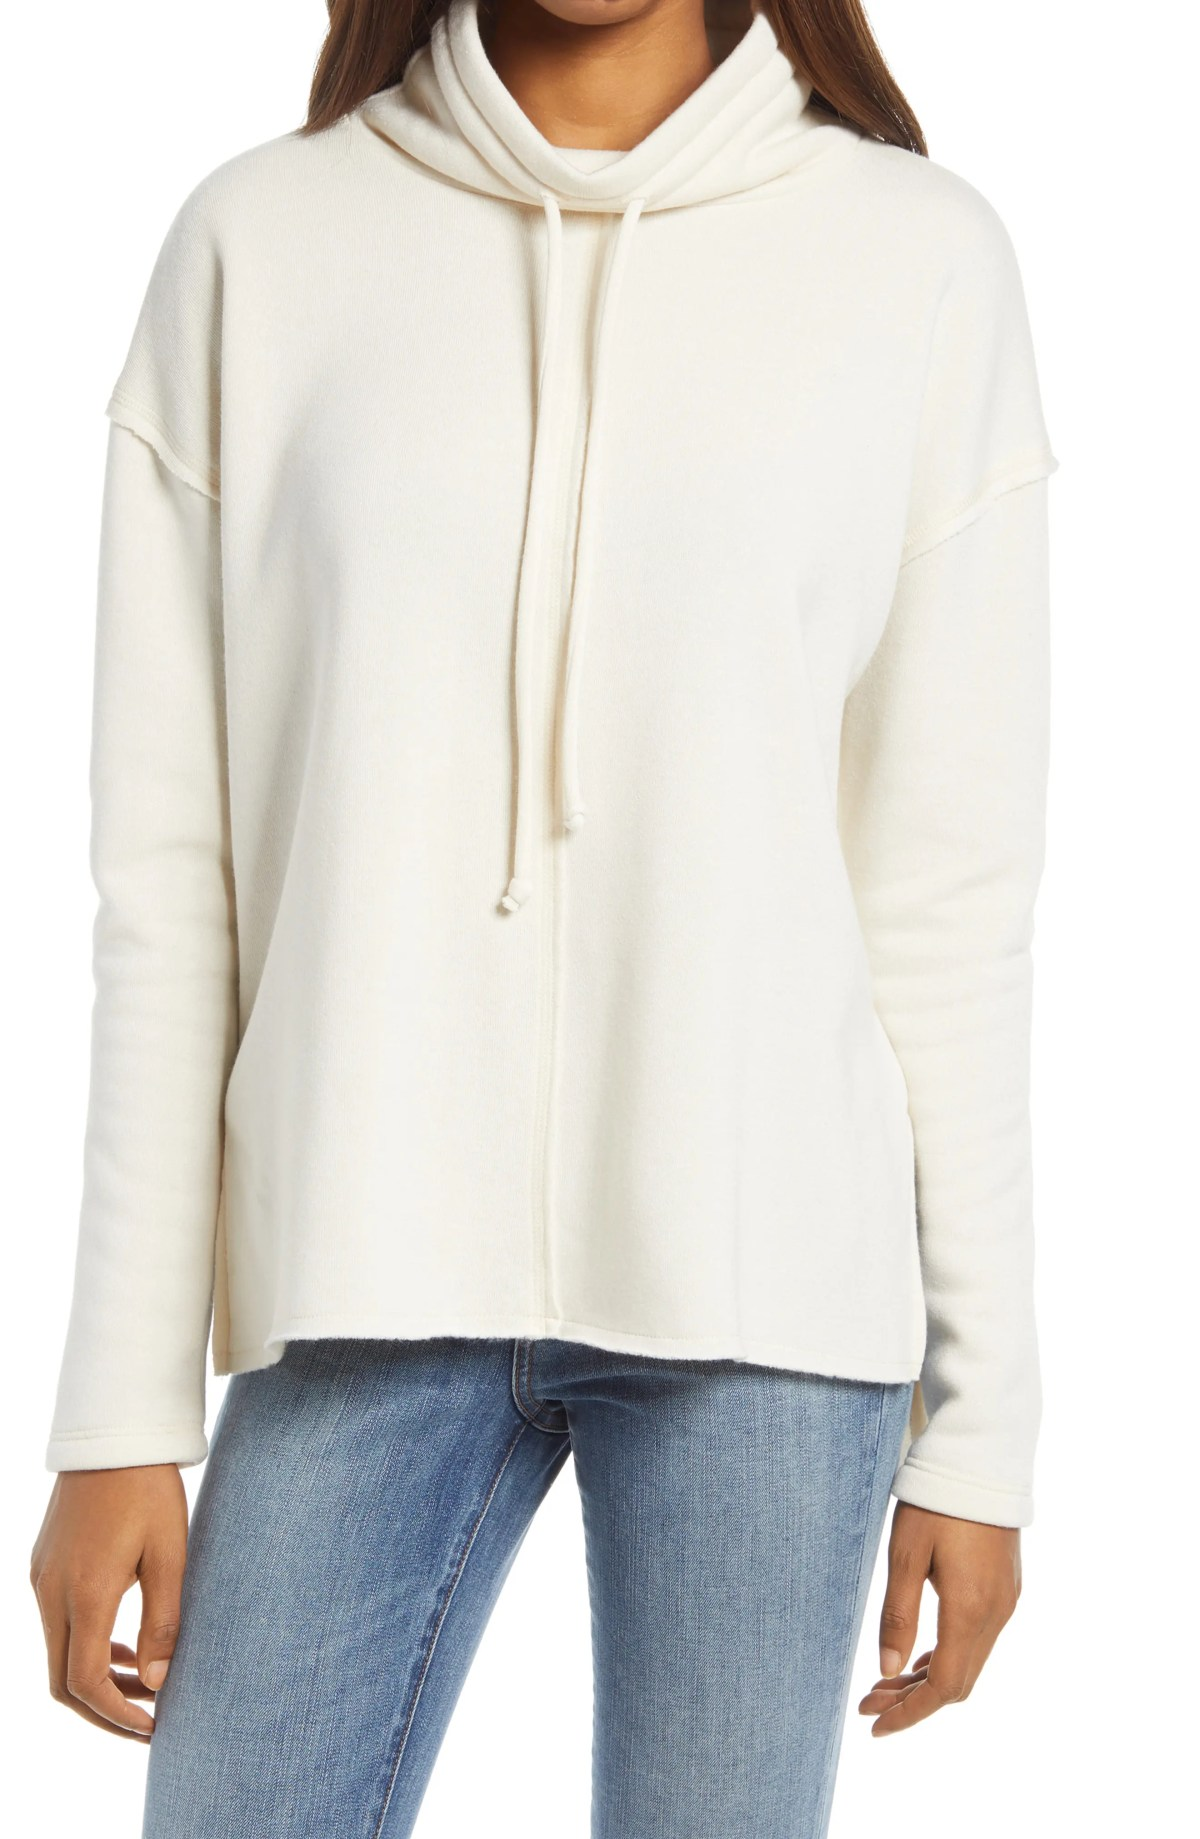 TREASURE & BOND Cowl Tie Neck Sweatshirt, Main, color, IVORY